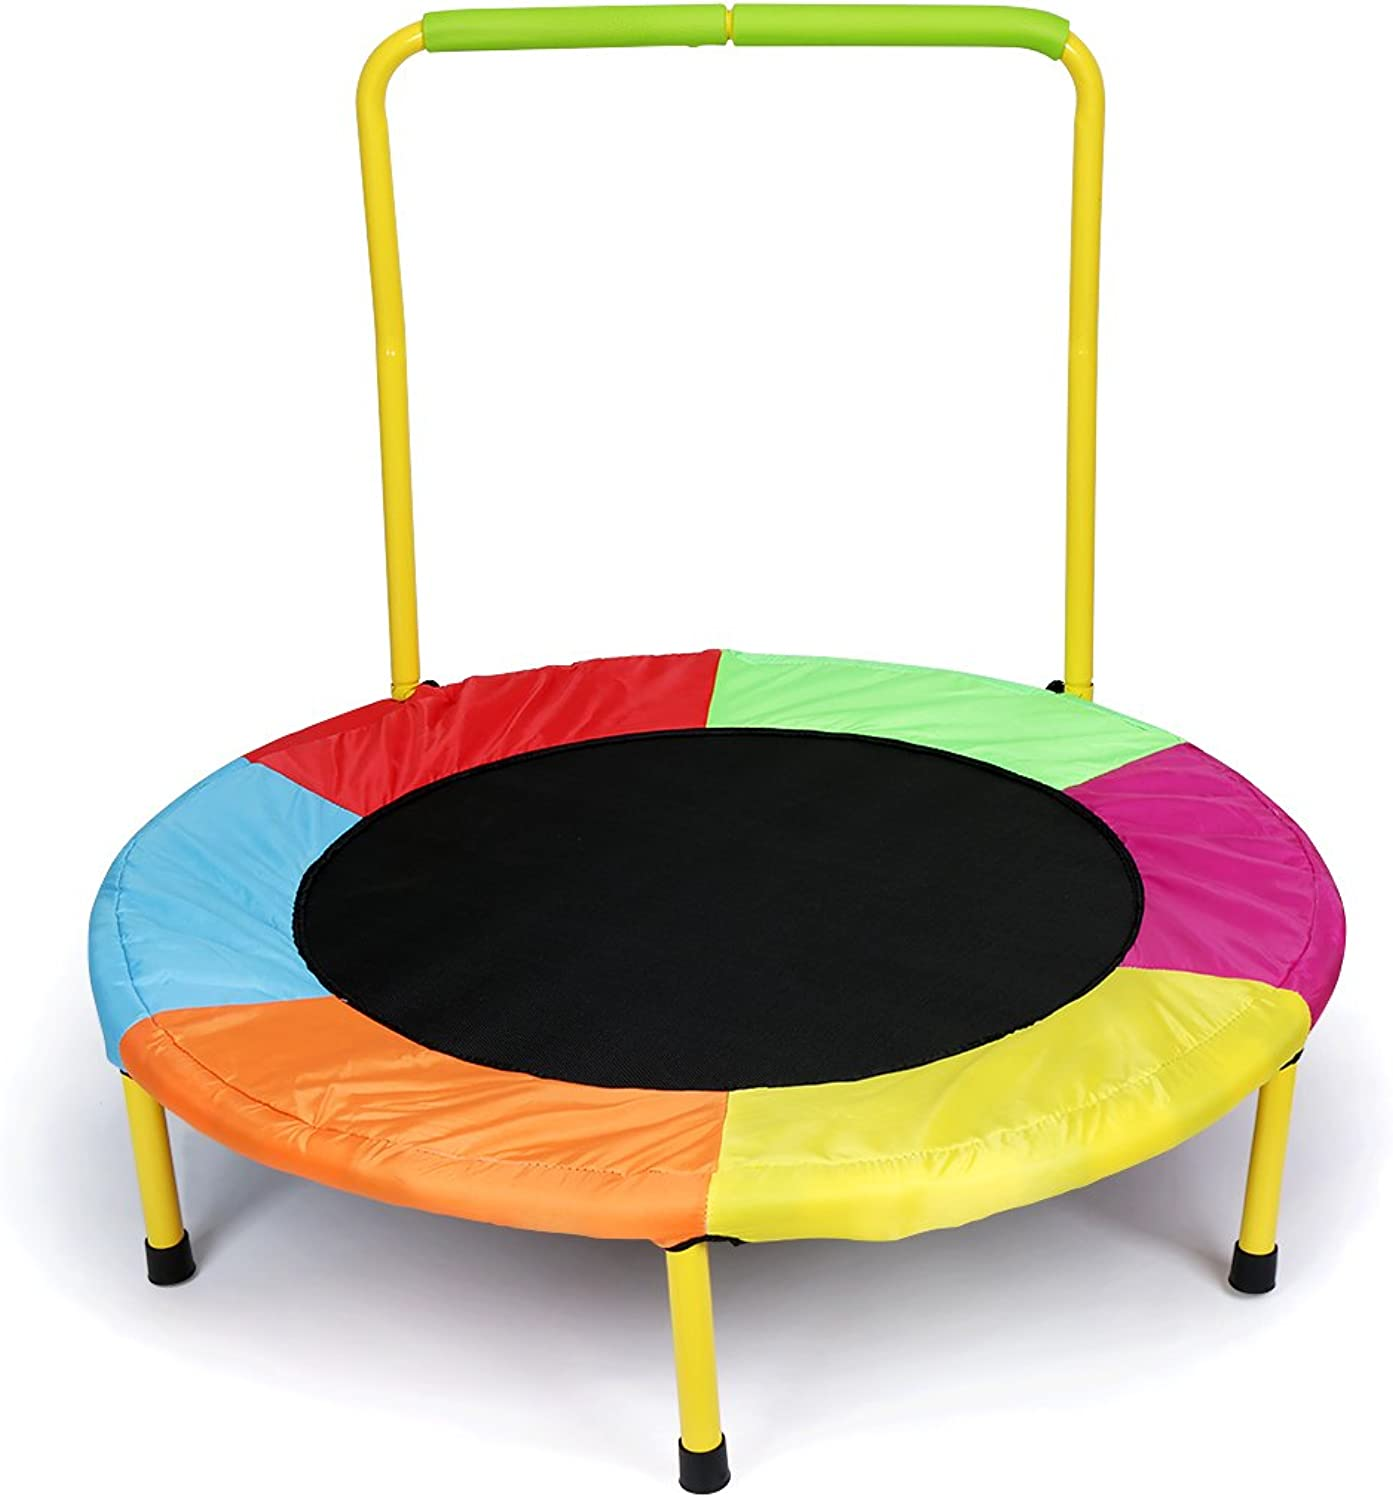 Hj JH colorful Folding Durable Junior Kids Trampoline Bouncer with Handle Indoor Outdoor